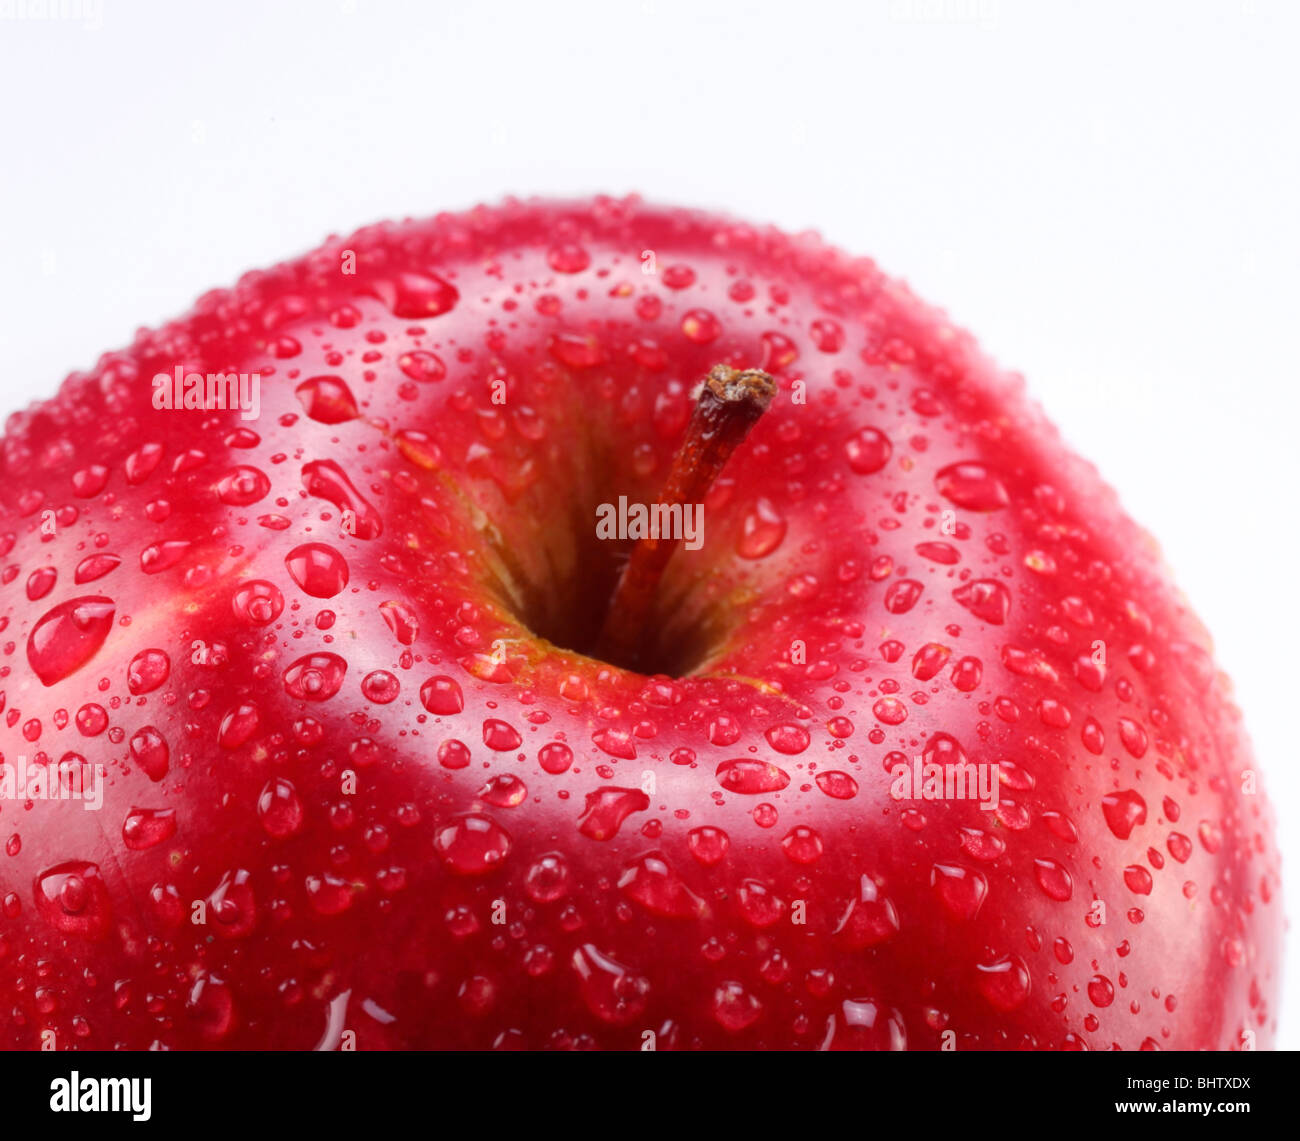 Red apple with leaf on a white background - Stock Image